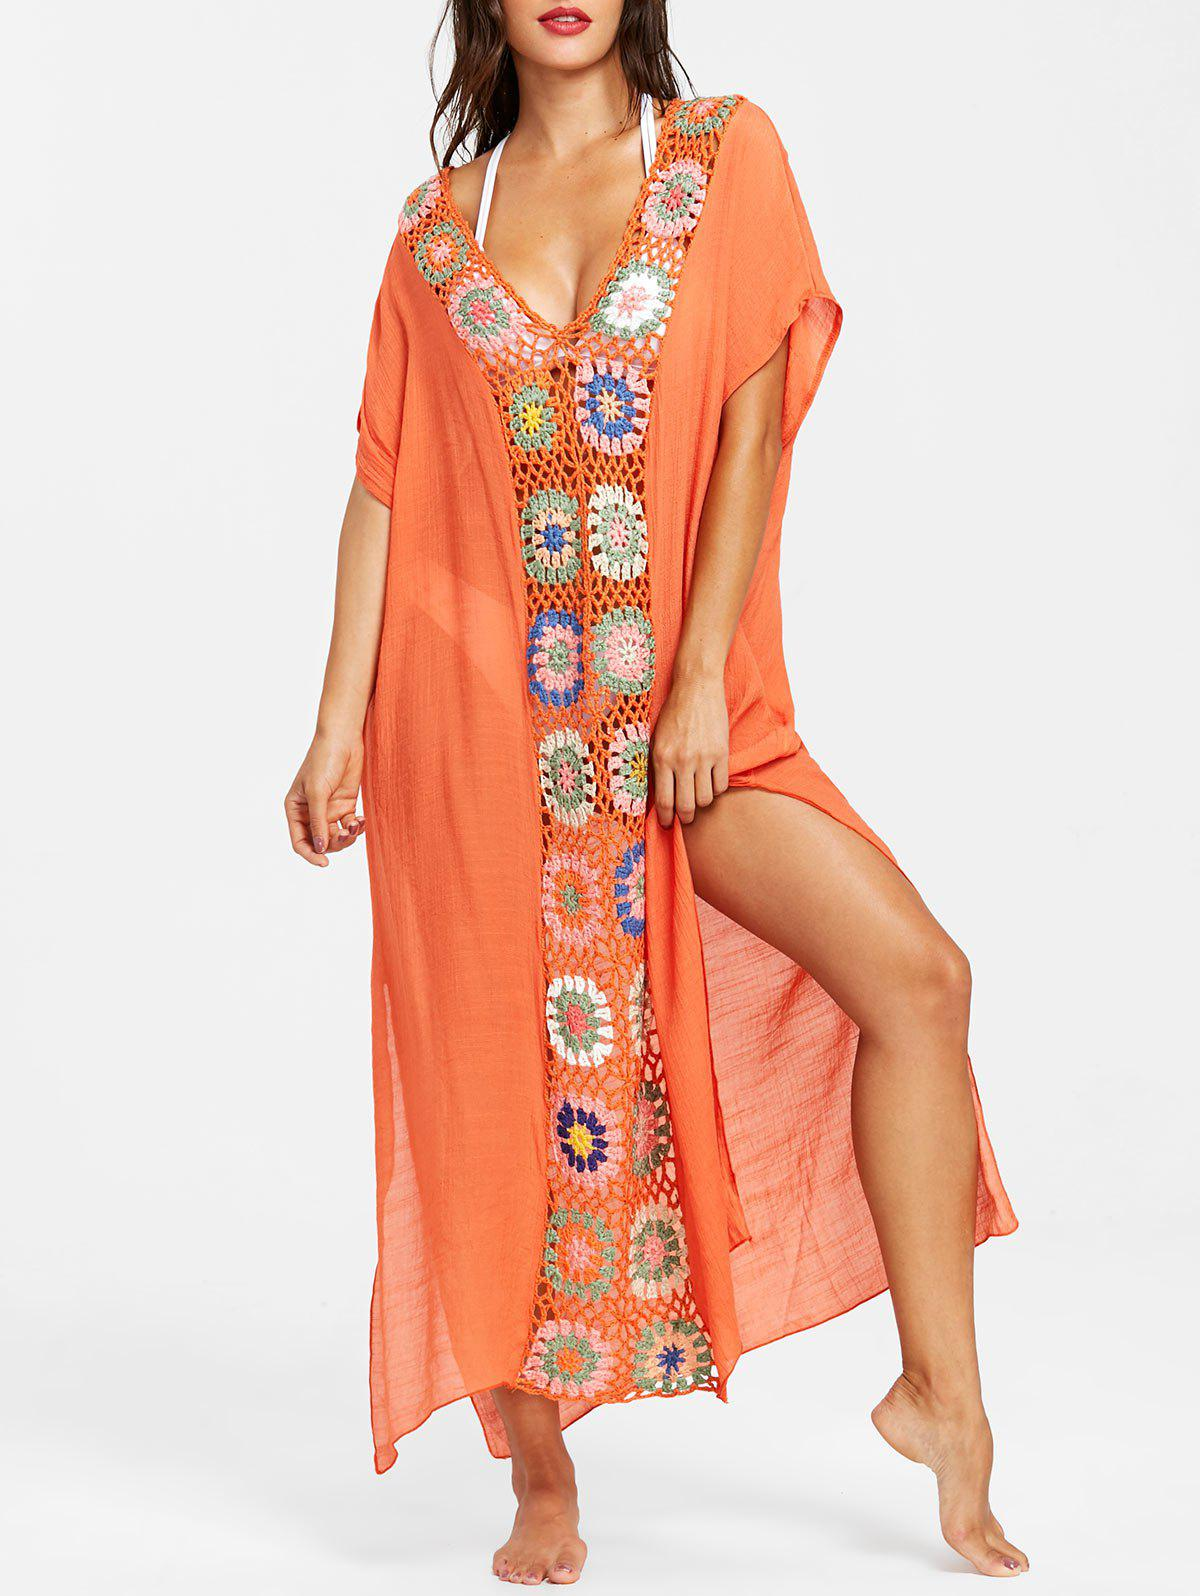 New Floral Crochet Maxi Cover-up